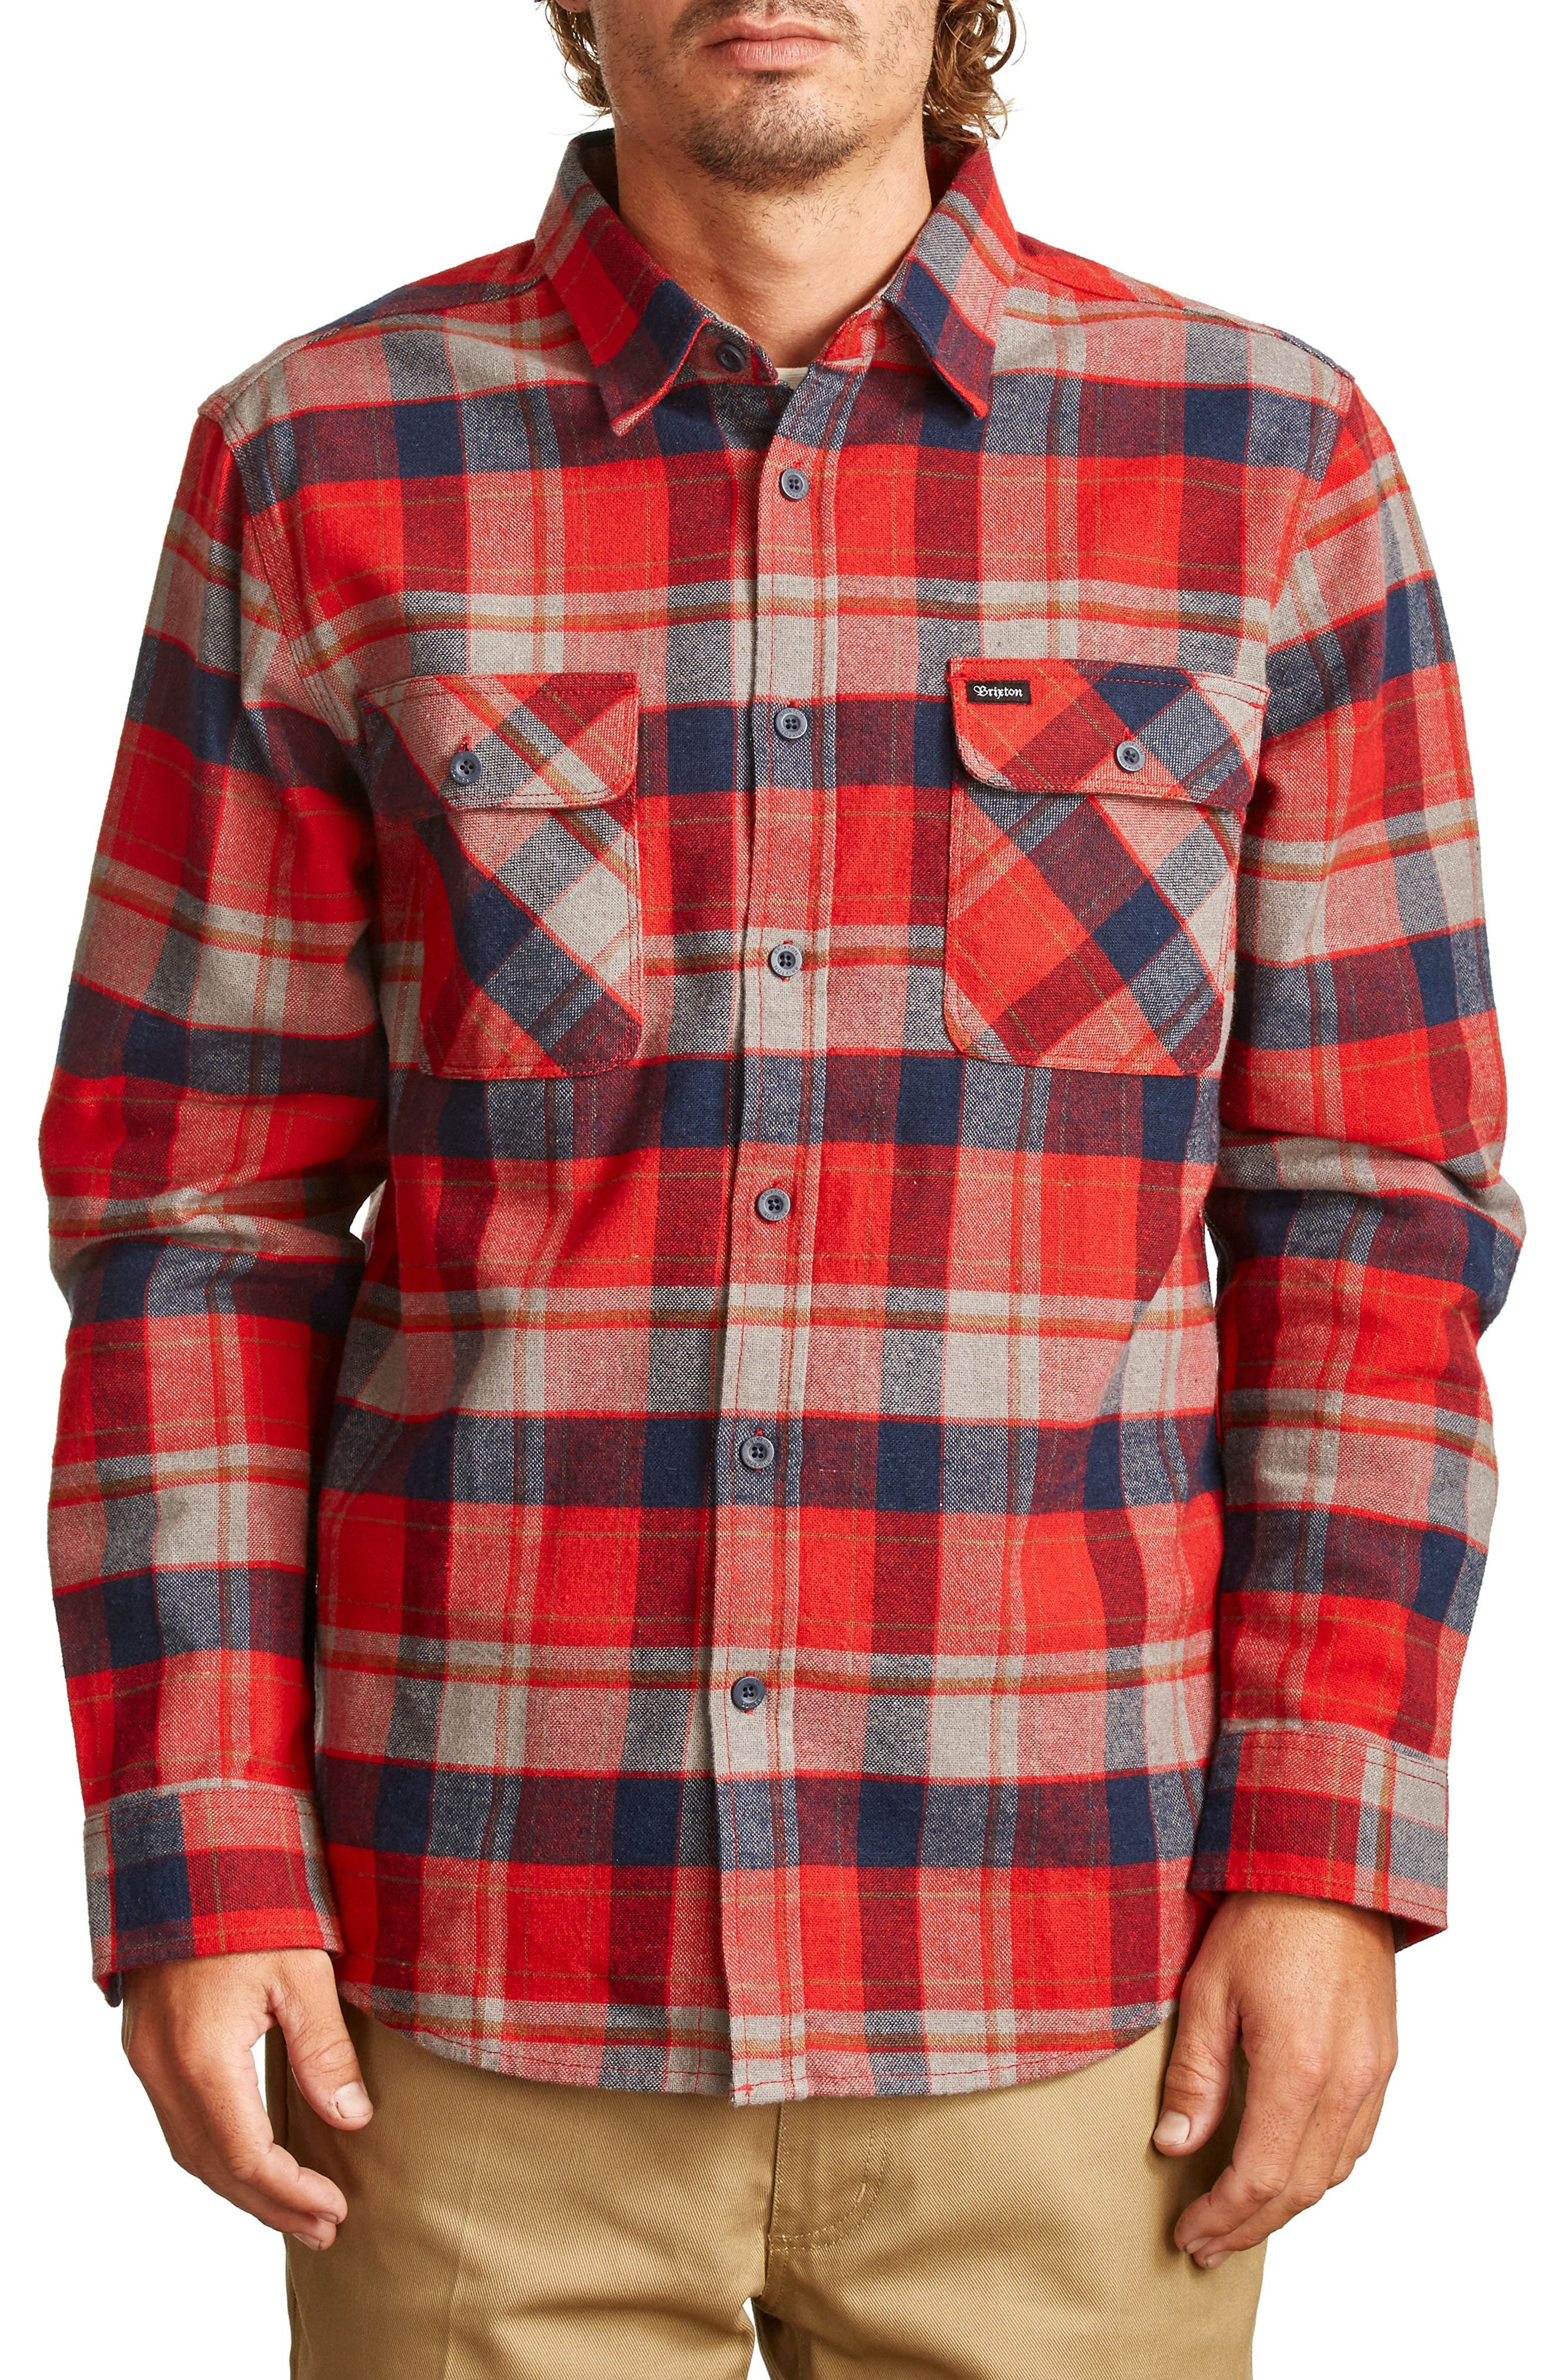 Bowery Flannel Shirt,                         Main,                         color, Red/ Heather Grey/ Navy